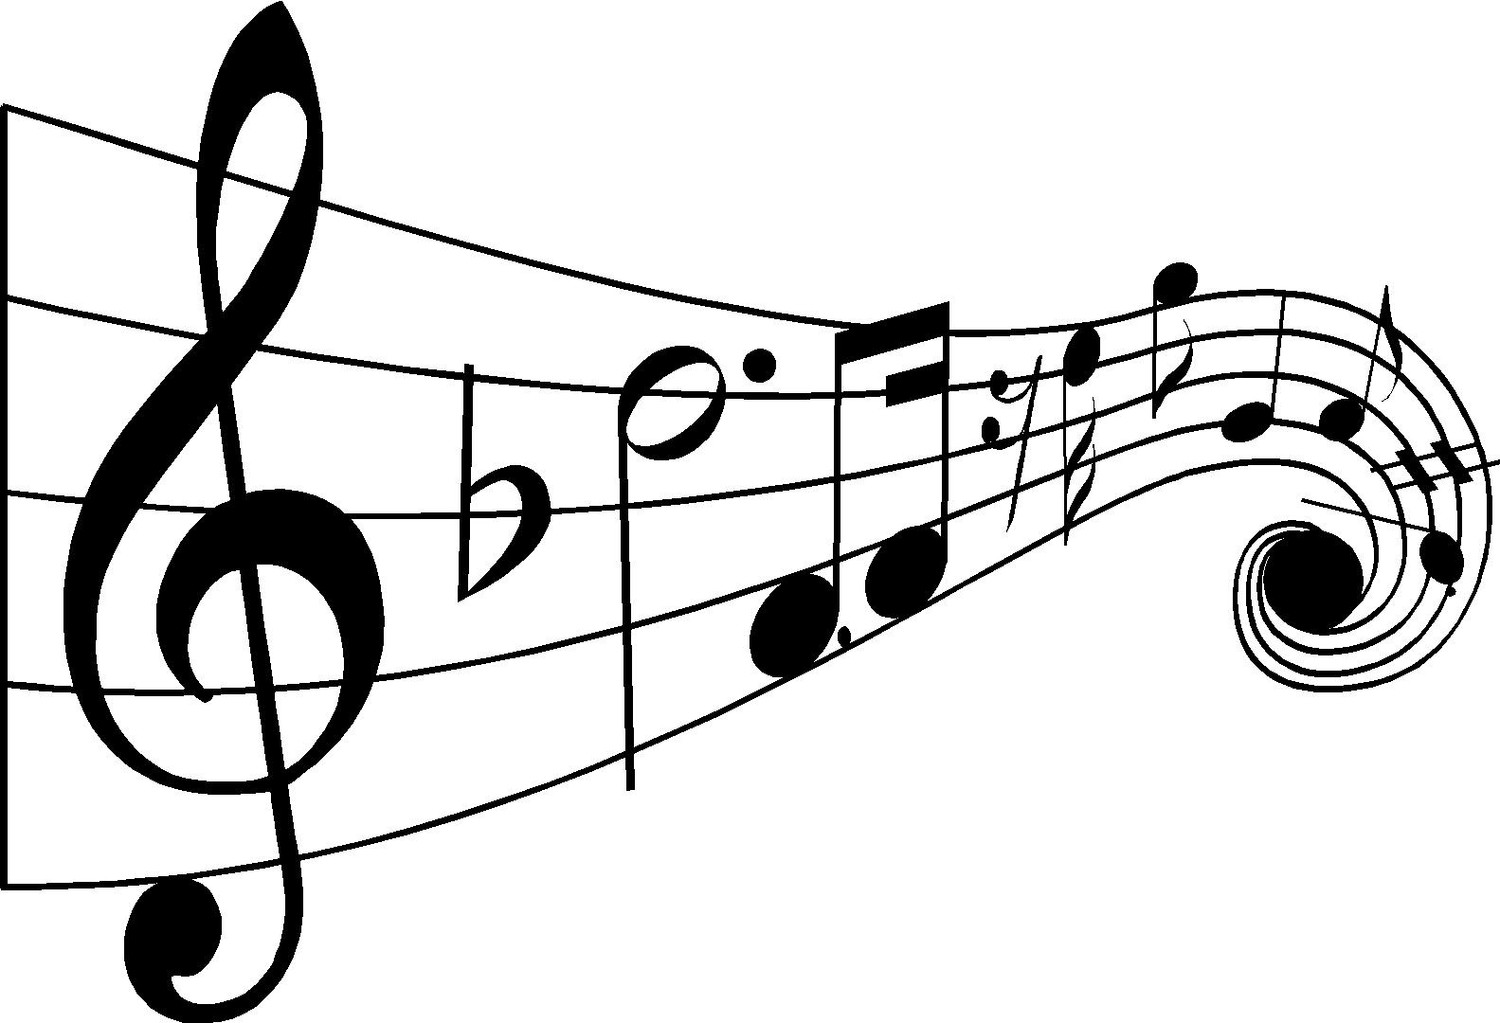 Line Art Music Notes : Music note art clipart best